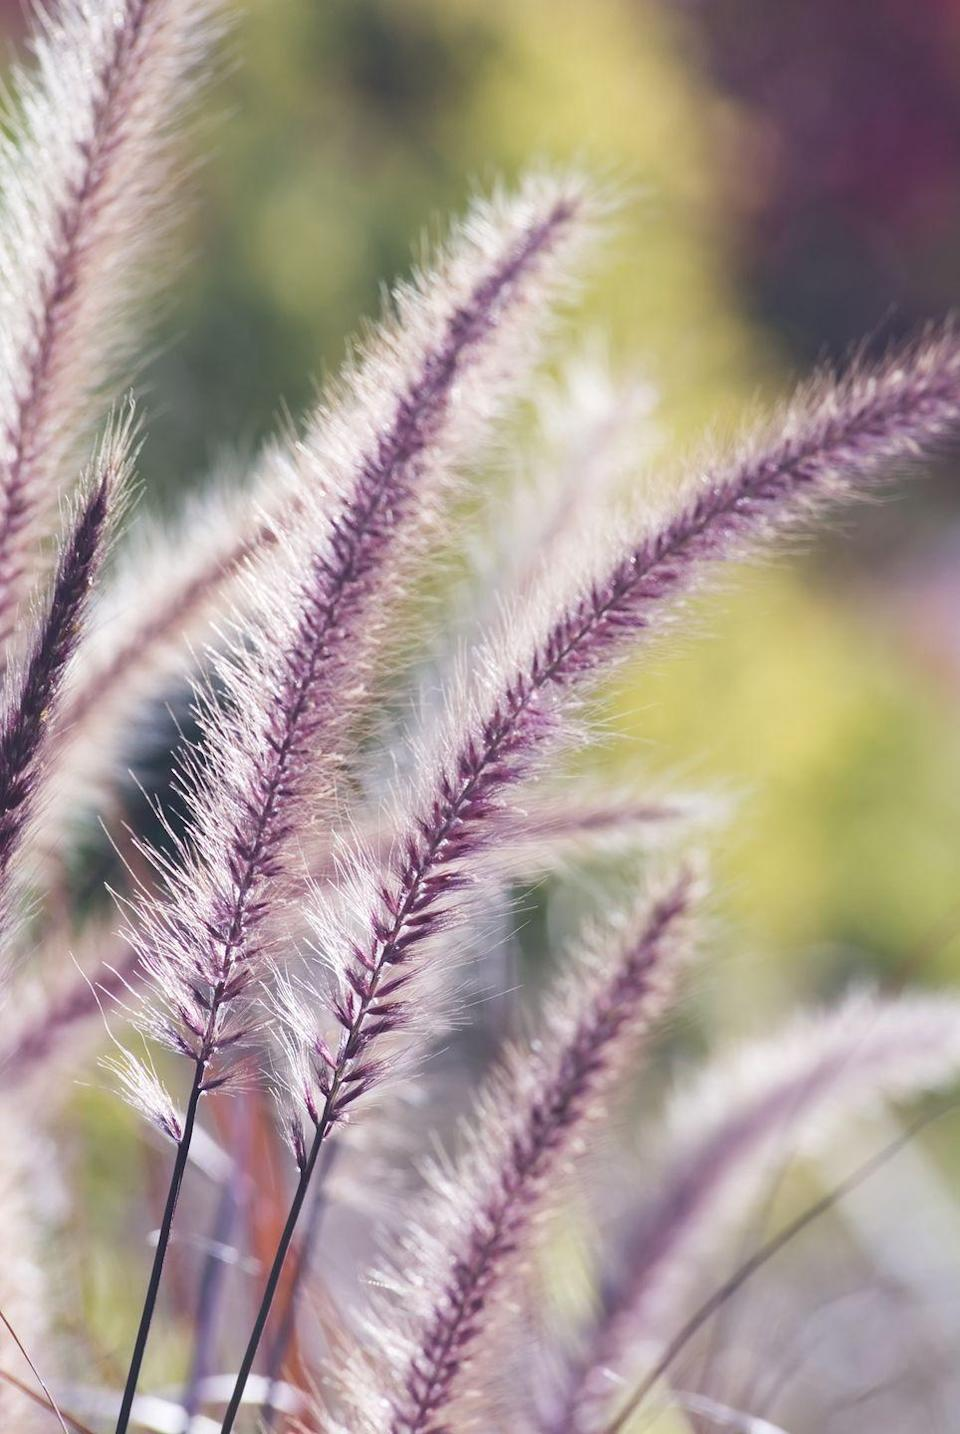 <p>Purple Fountain Grass creates a romantic environment with their soft purple hues and elegantly arched, fussy blooms. This ornamental grass doesn't like harsh winters, so it thrives best when planted only in very warm climates.</p><p><strong>When it blooms: </strong>July, but changes color through the fall</p><p><strong>Where to plant:</strong> Full sun</p><p><strong>When to plant: </strong>Anytime, particularly in spring</p><p><strong>USDA Hardiness Zones: </strong>9 or warmer</p>